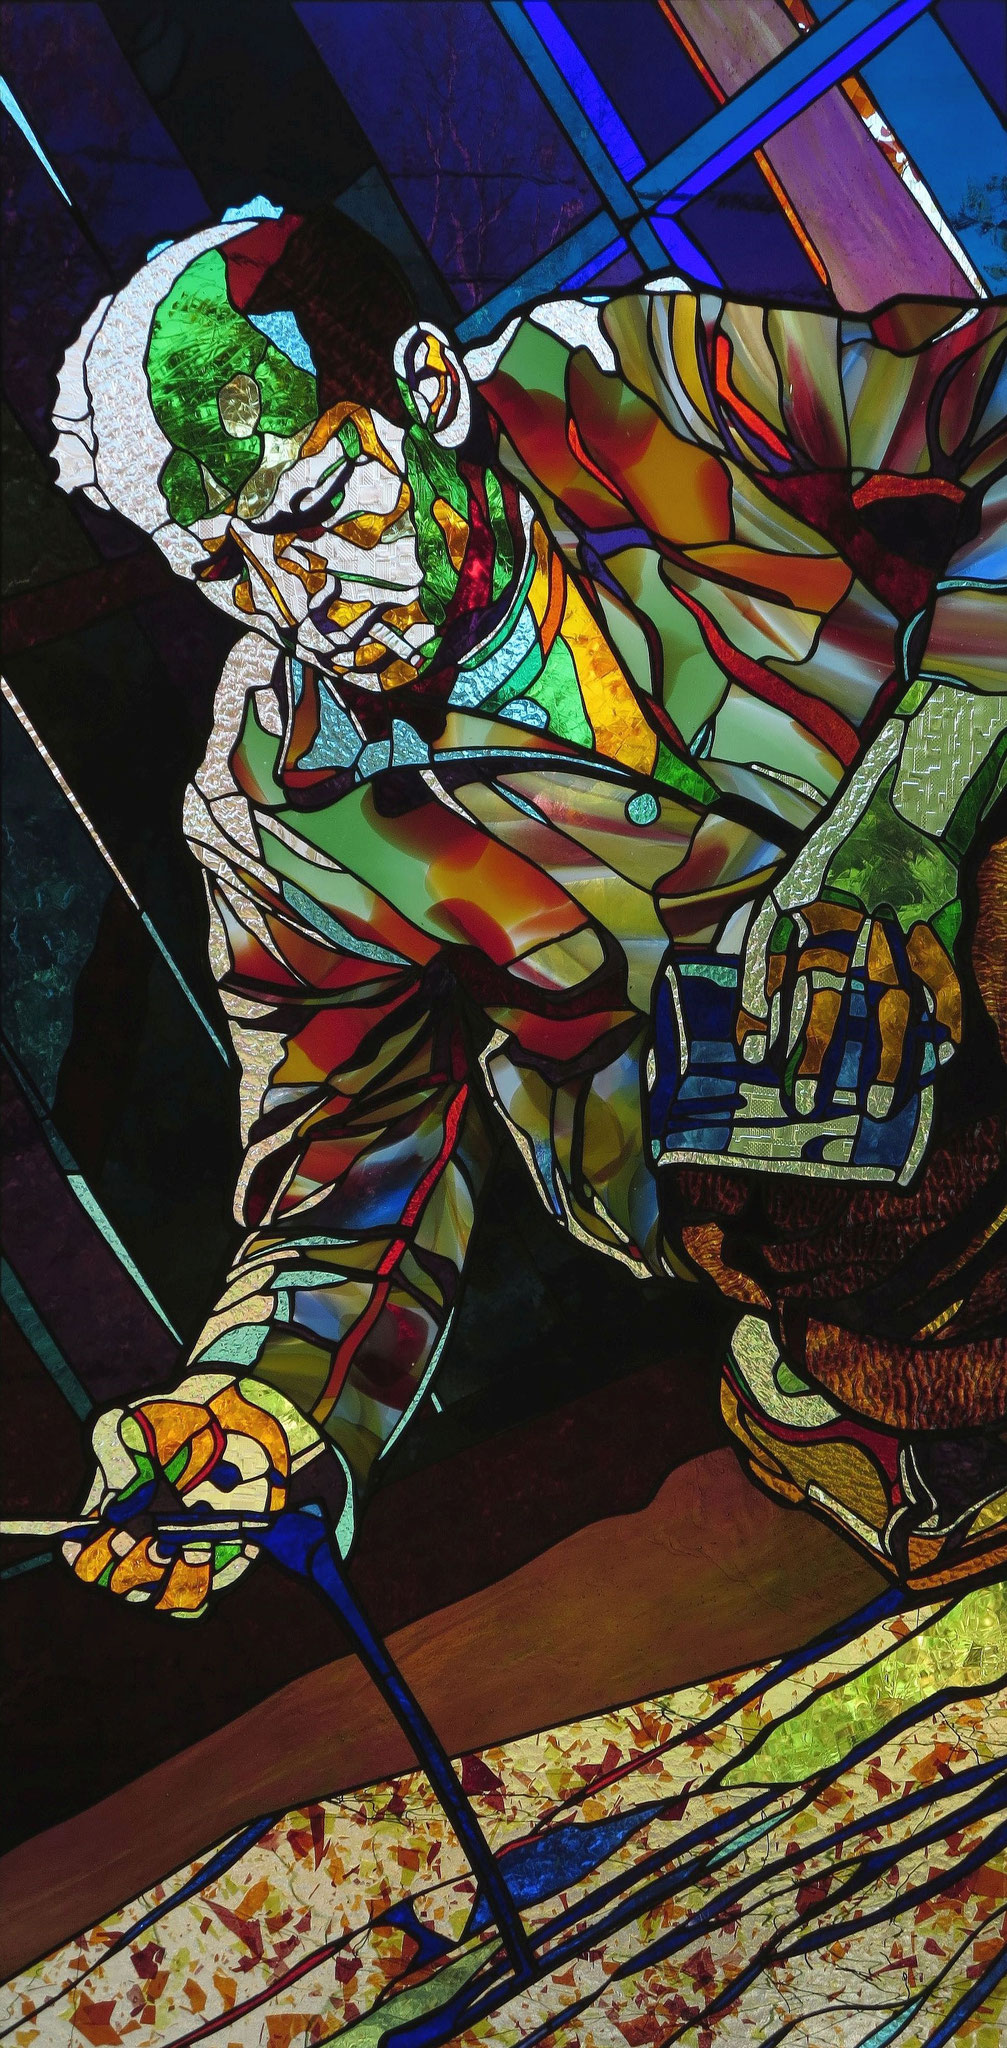 JACKSON POLLOCK   26 x 54 inches stained glass, photo by Hadyn Butler